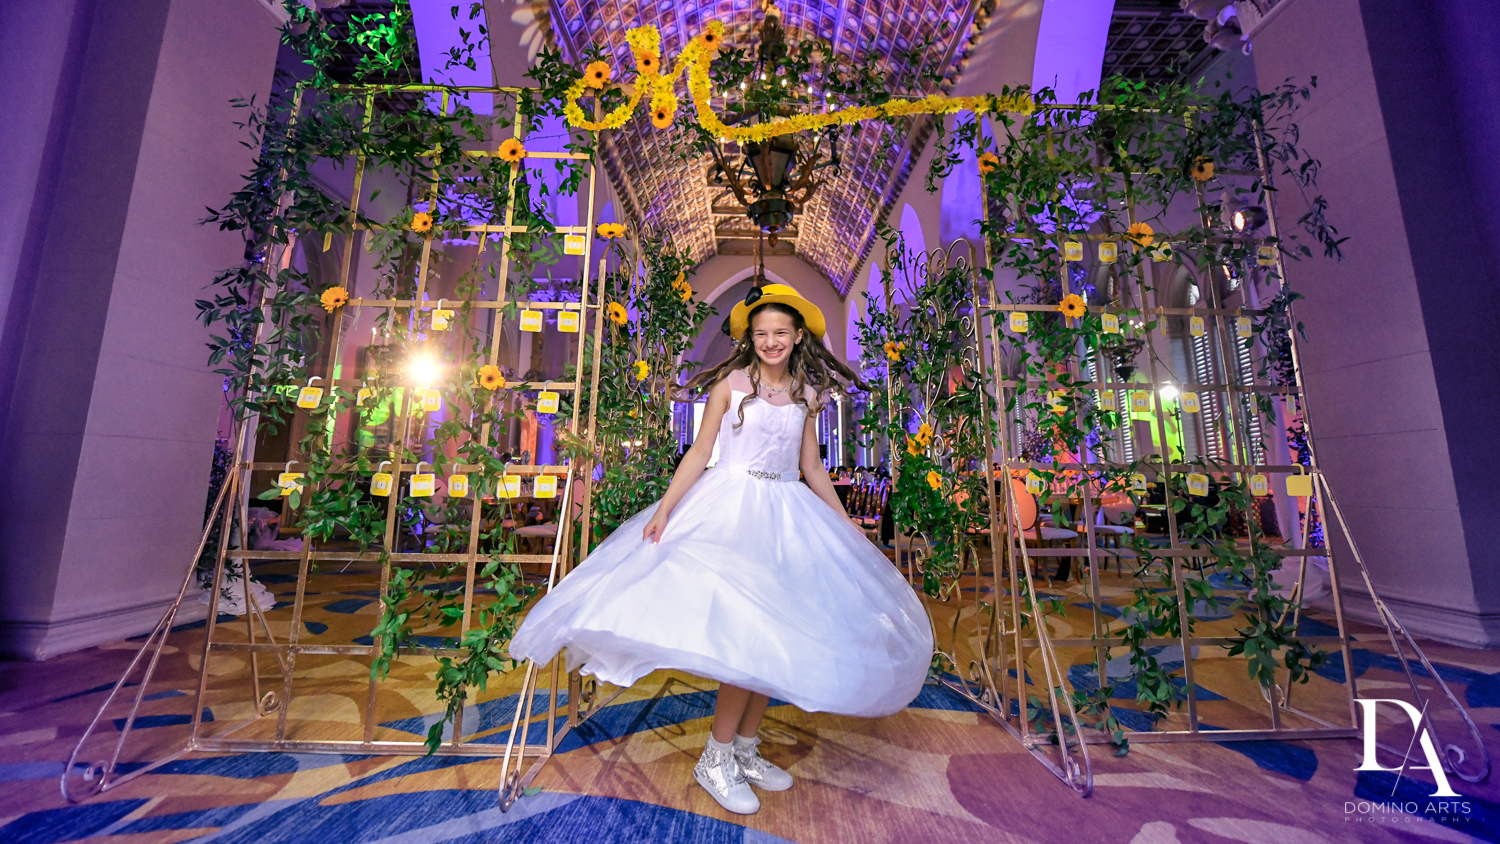 fun portraits at Madeline in Paris theme Bat Mitzvah at Boca Raton Resort and Club by Domino Arts Photography